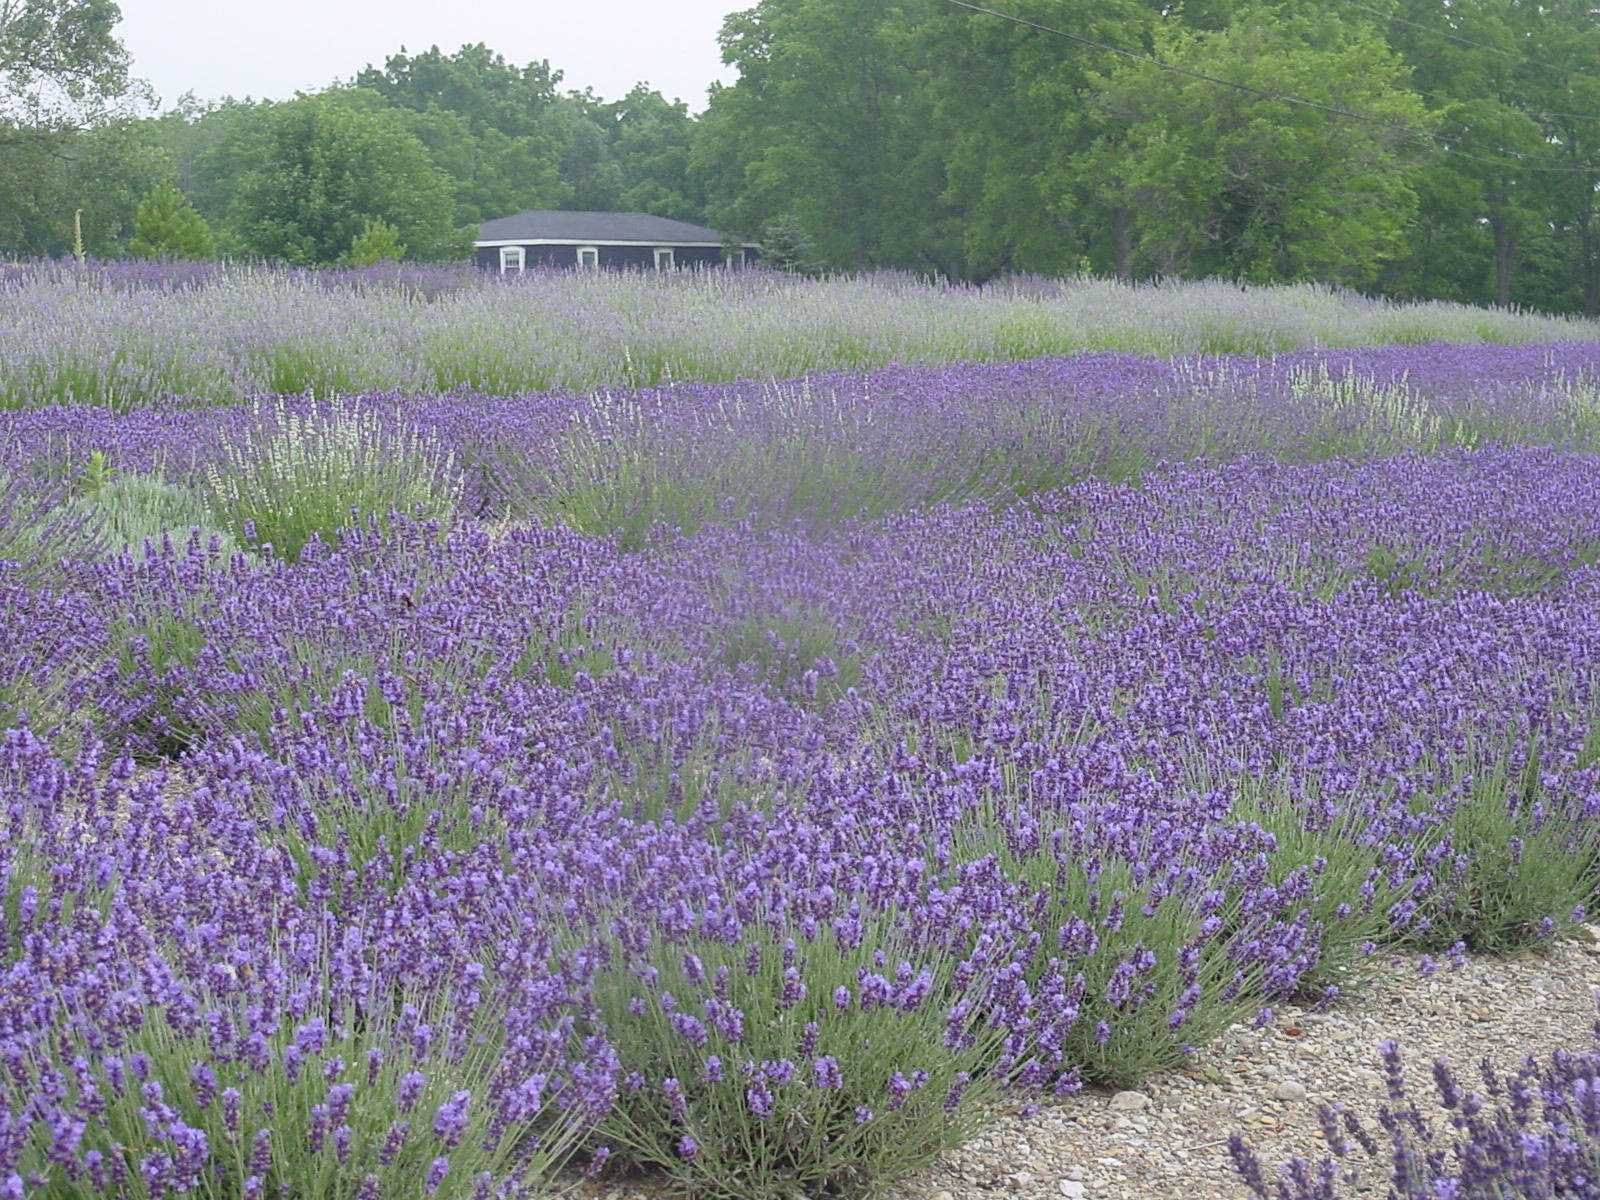 The lavender field in full bloom